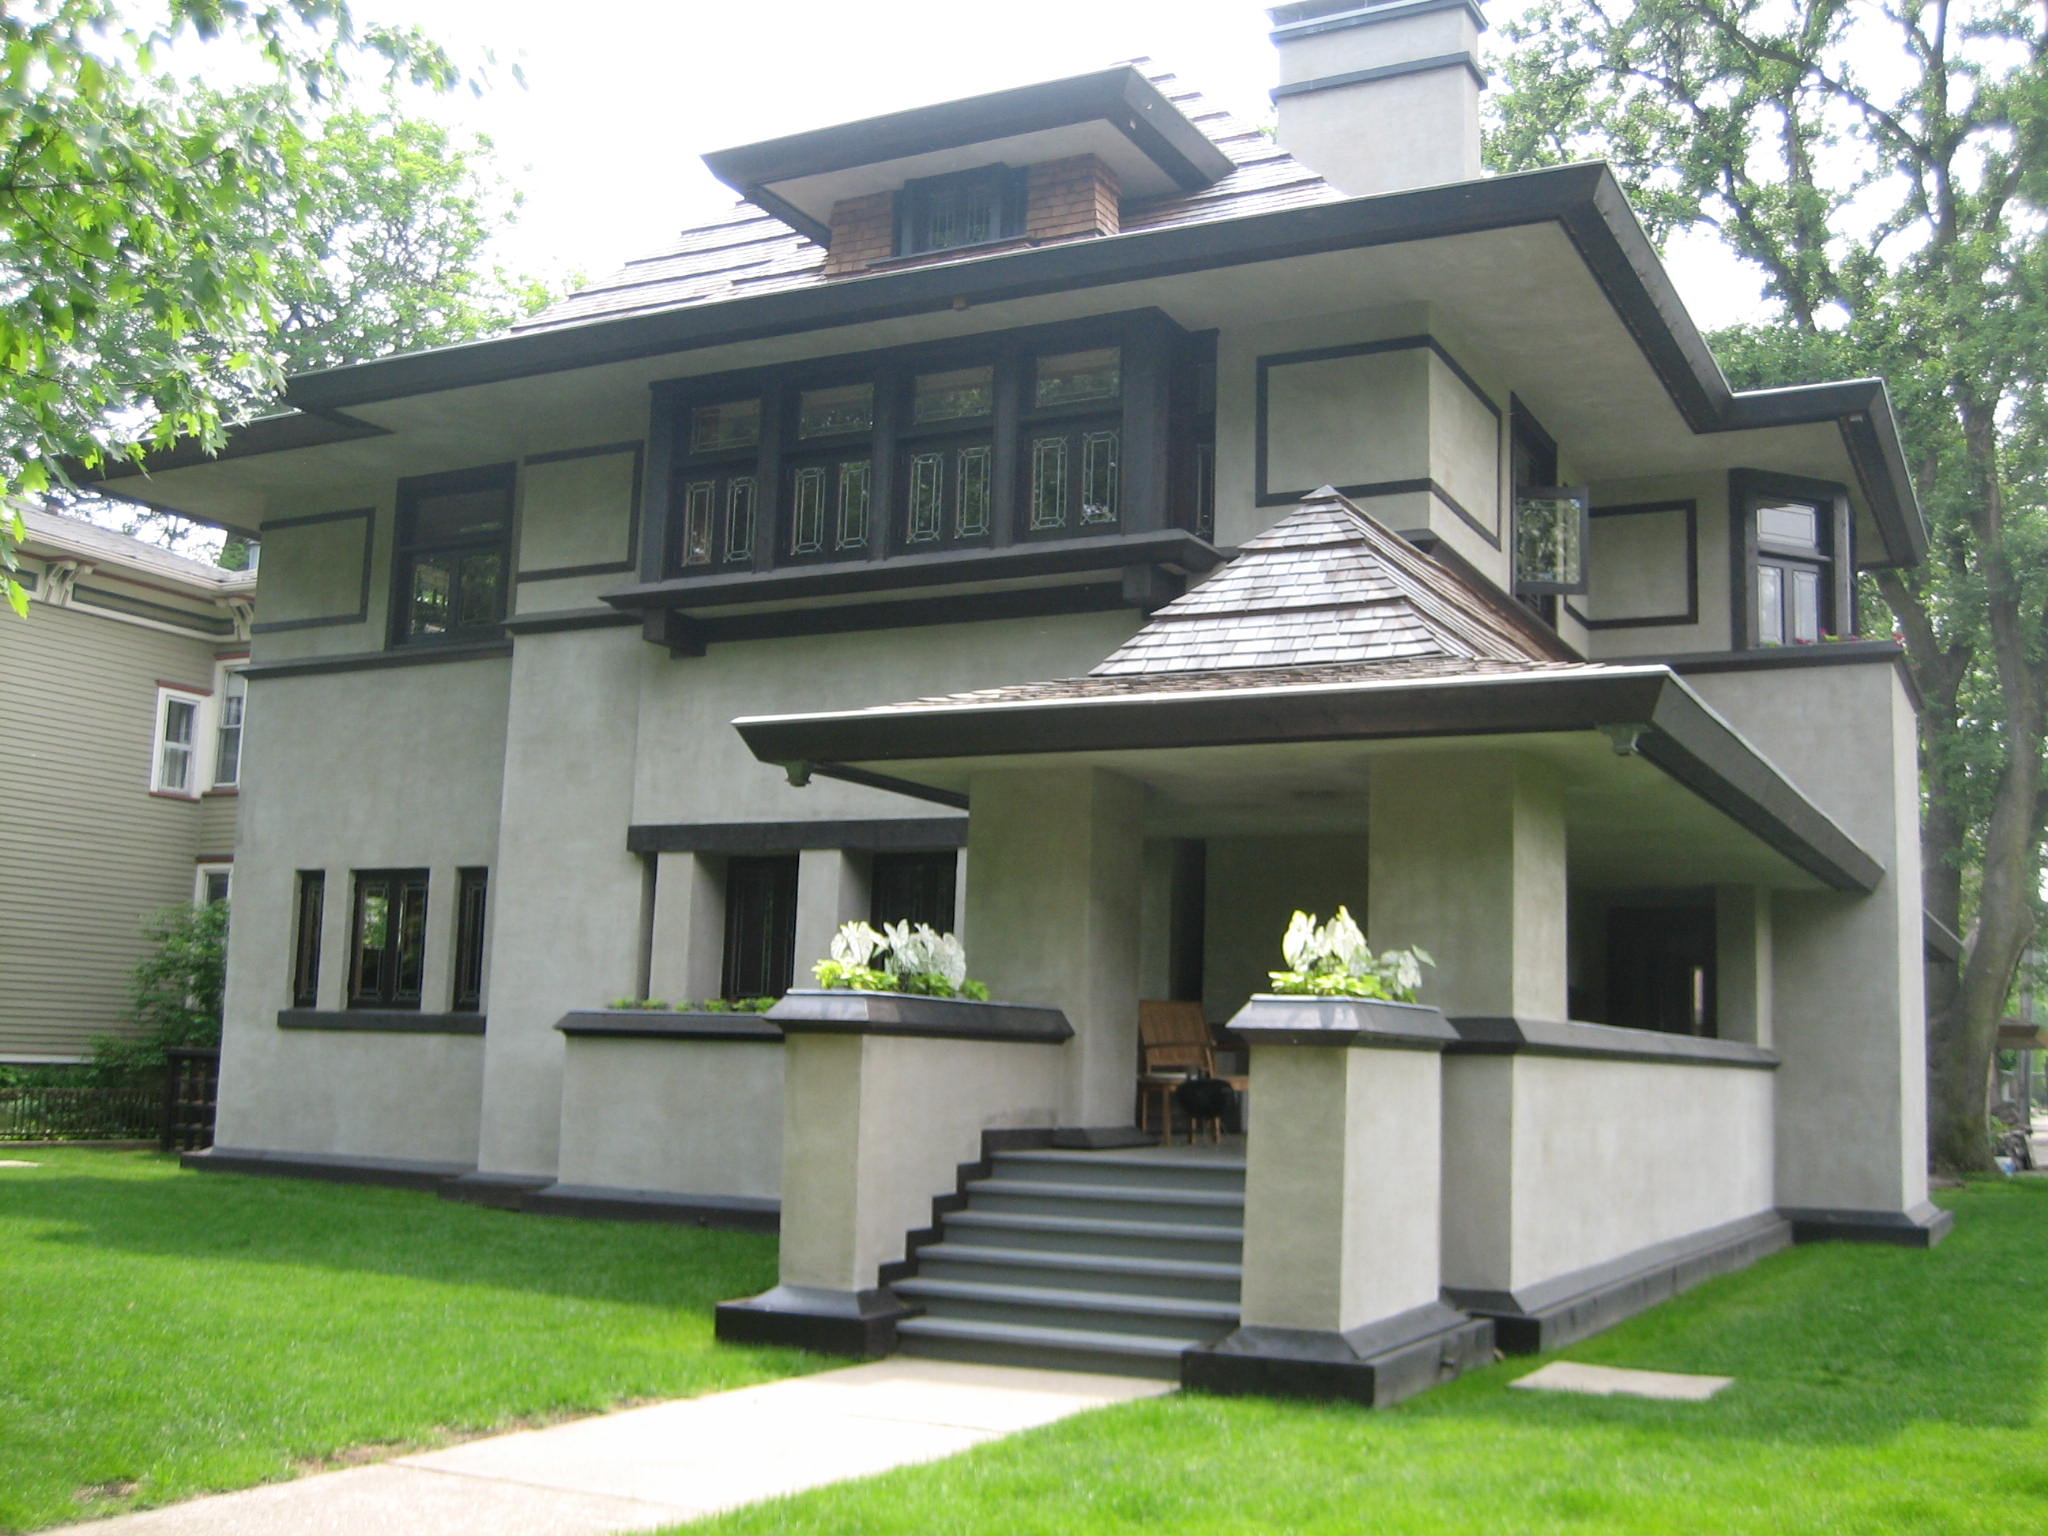 File:Oak Park Il Hills House2.jpg - Wikimedia Commons